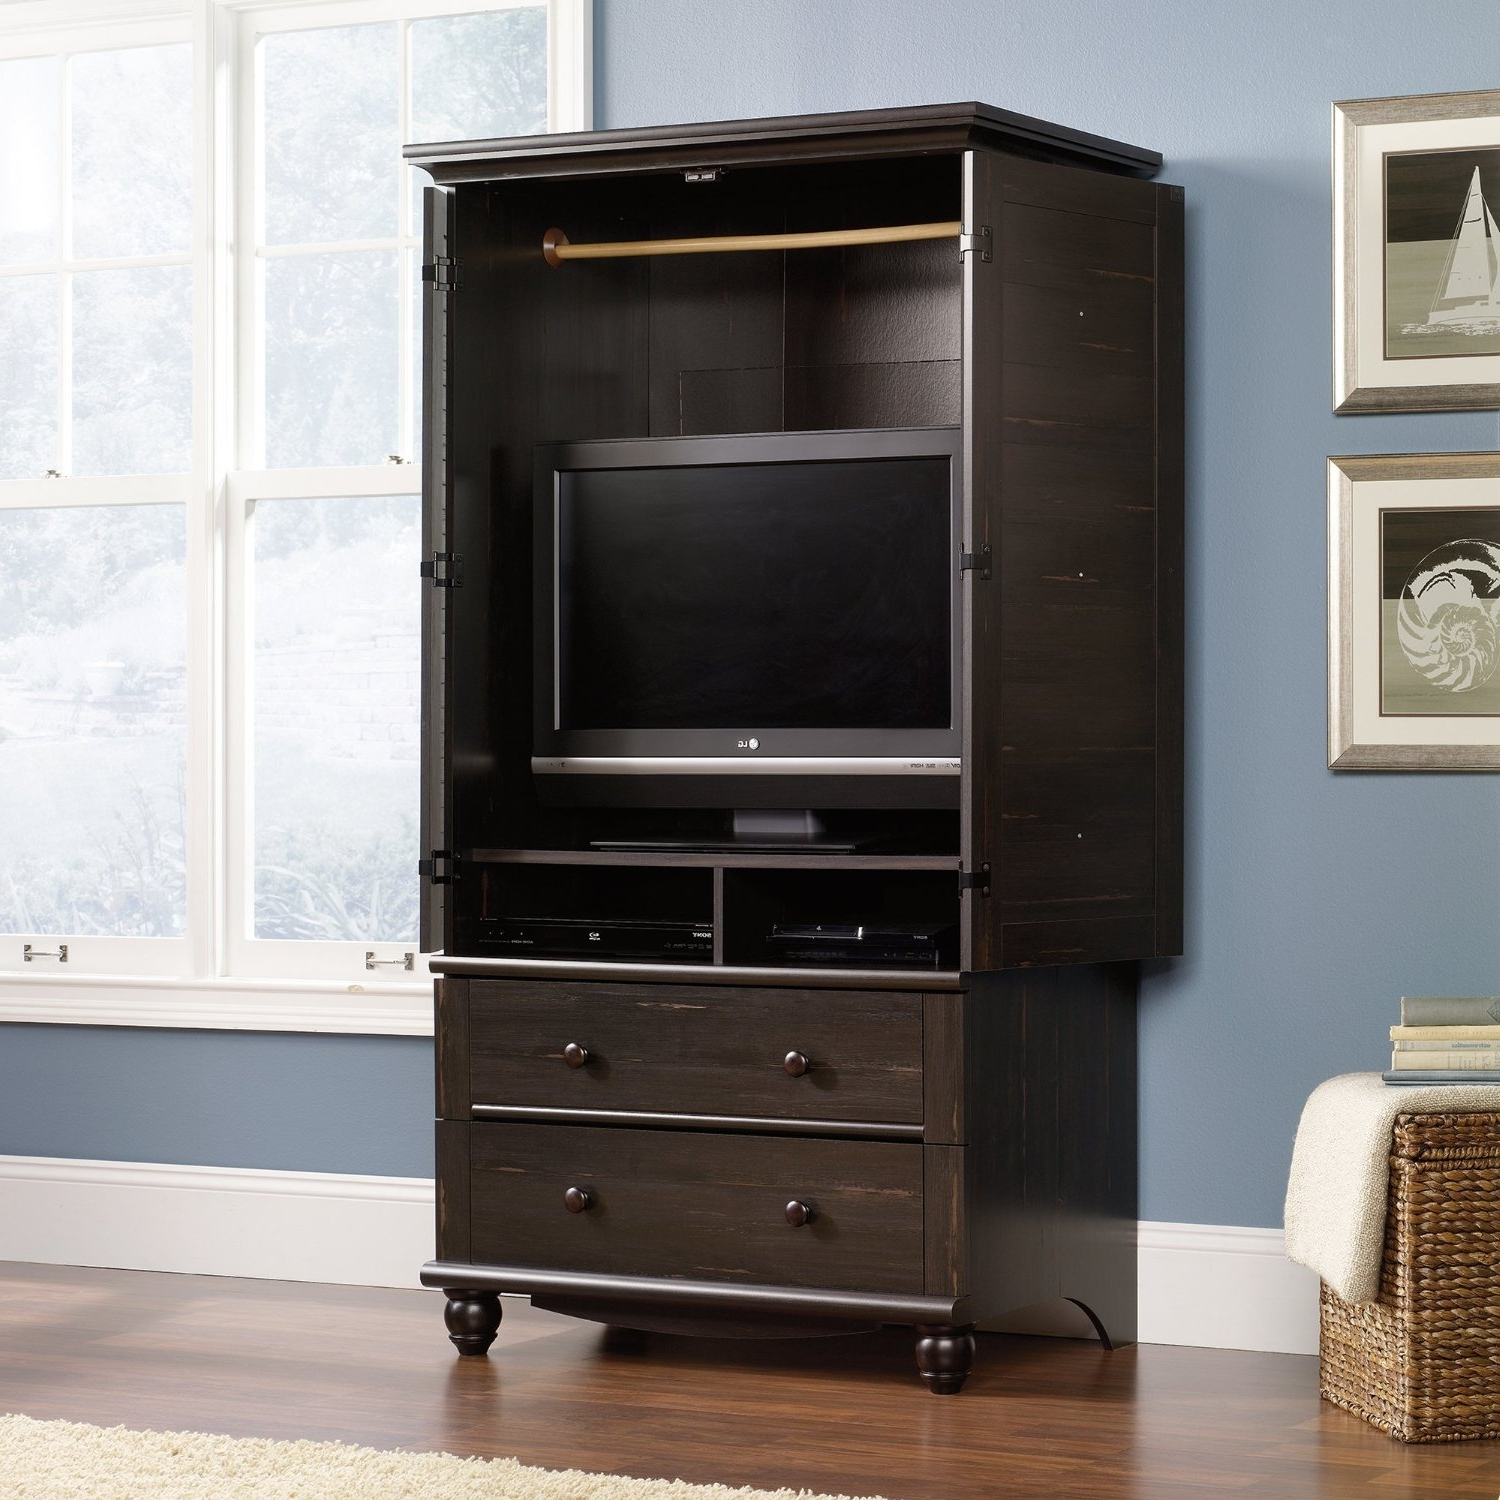 Most Recently Released Bedroom: Antique Interior Storage Design With Wardrobe Armoire For Wicker Armoire Wardrobes (View 2 of 15)